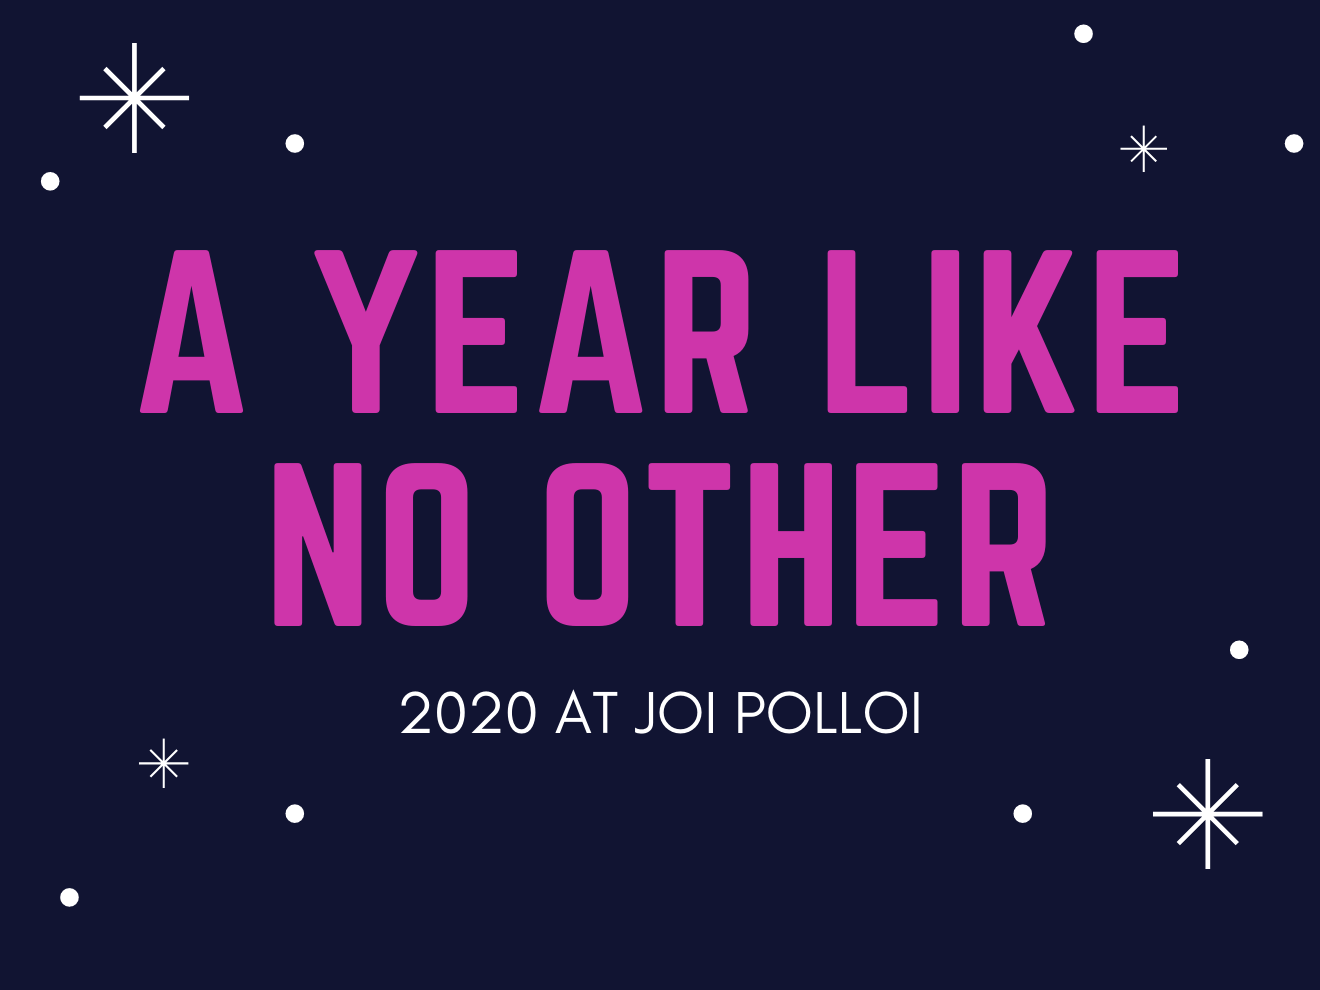 A year like no other - 2020 at Joi Polloi